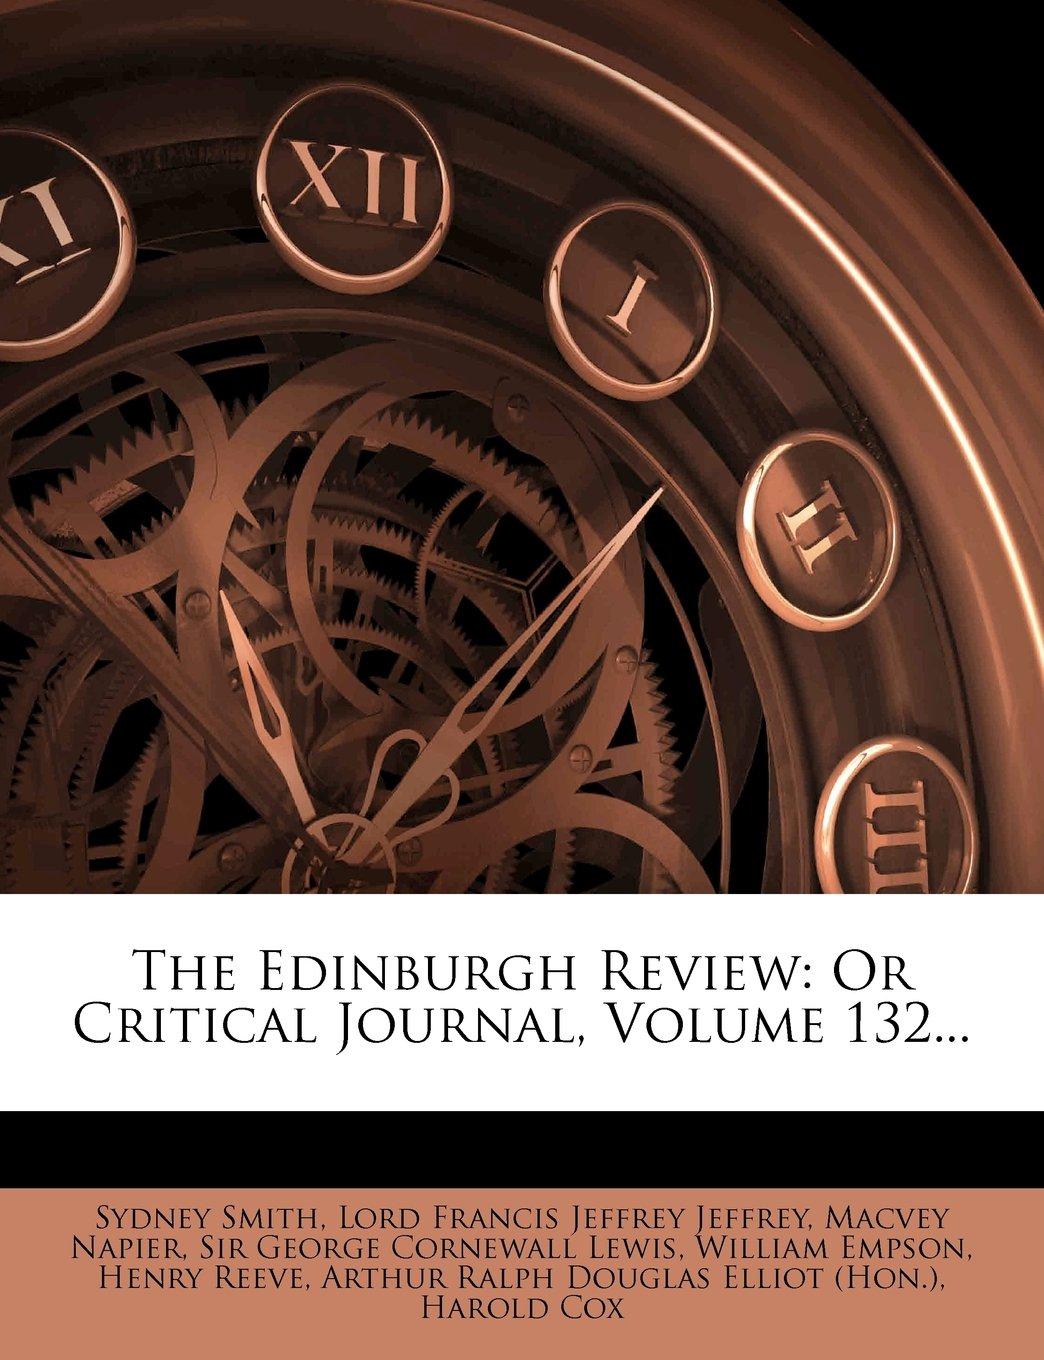 The Edinburgh Review: Or Critical Journal, Volume 132... ebook